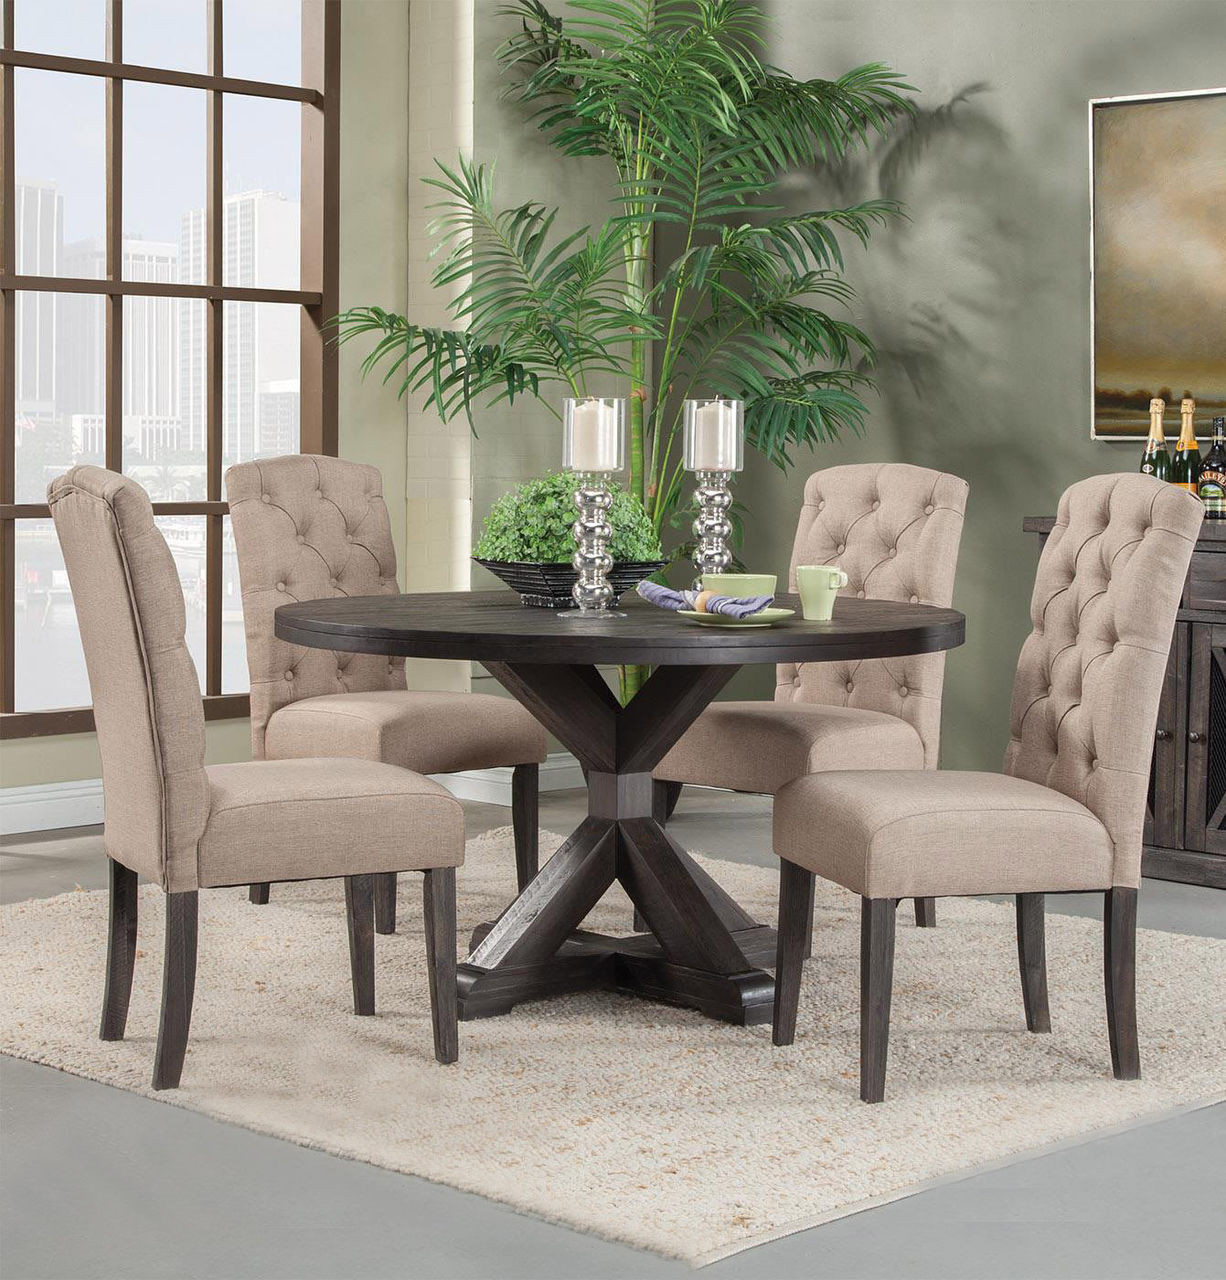 "Round Dining Tables Ideas And Styles For Sophisticated: Alpine Newberry 54"" Round Dining Room Table Set In"